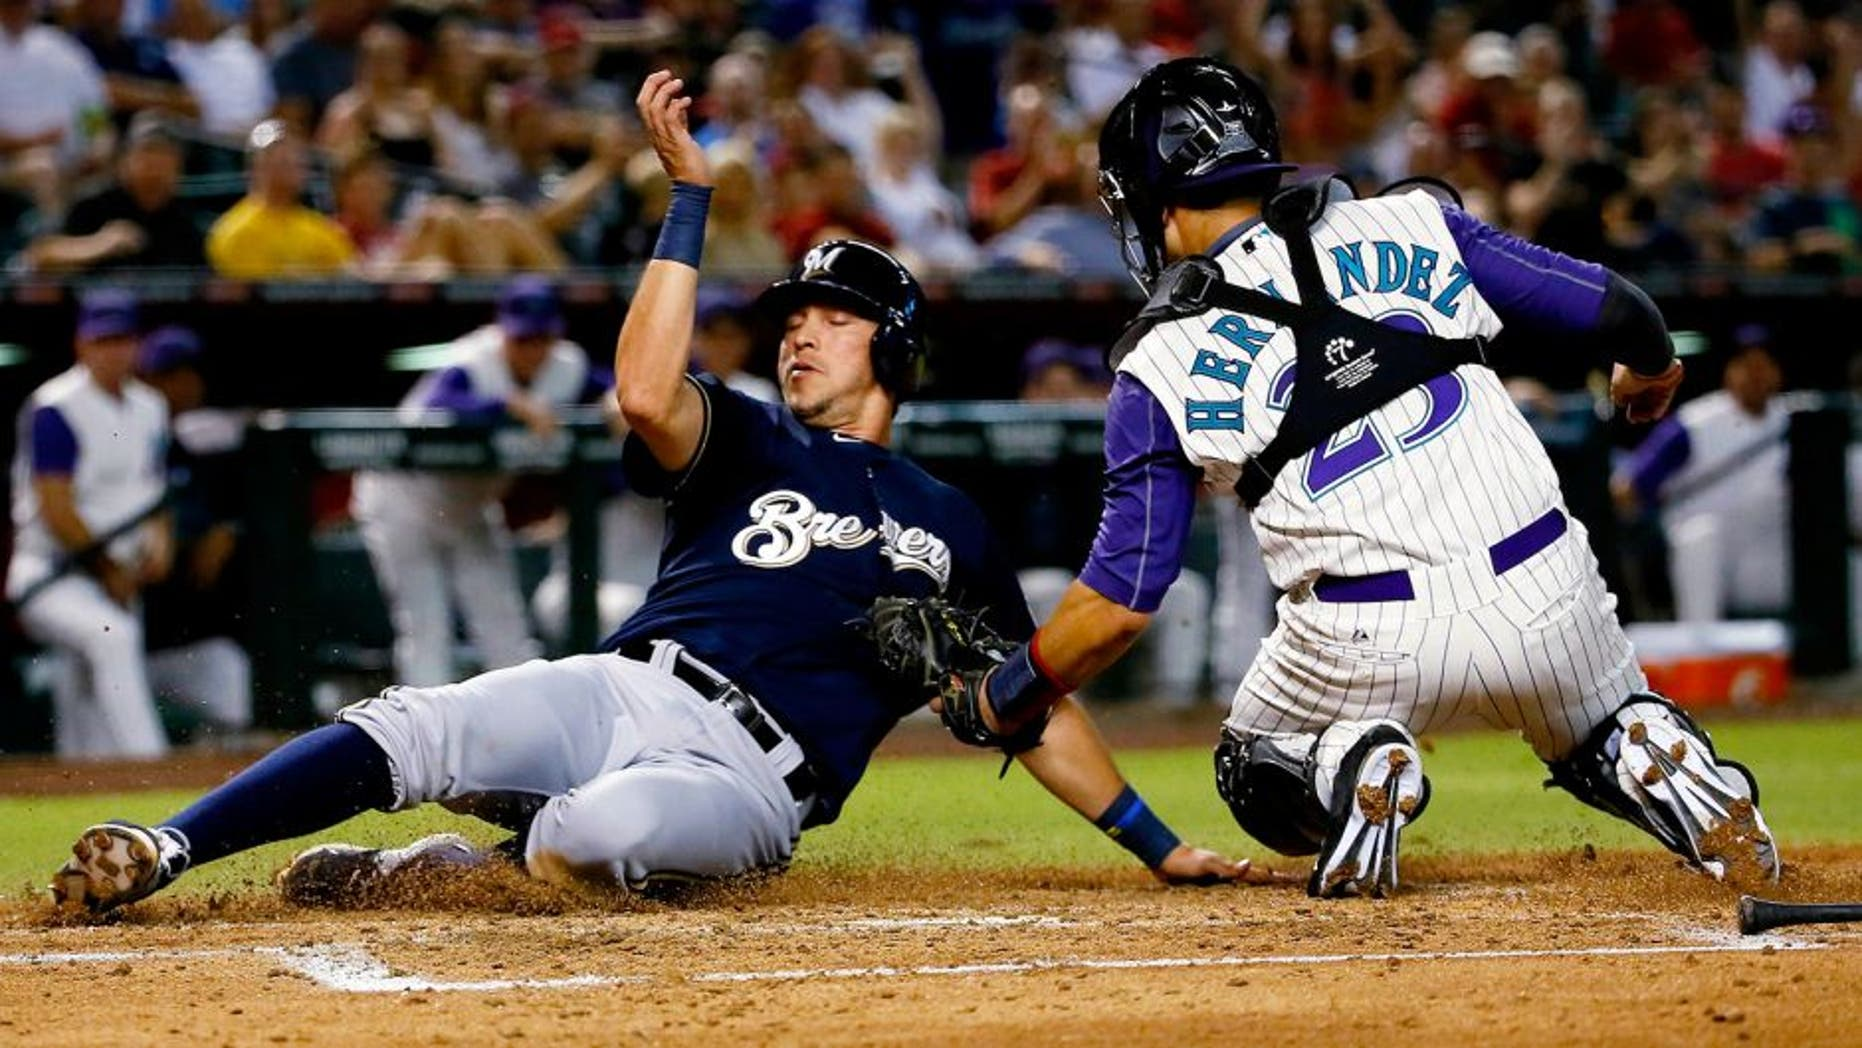 Milwaukee Brewers' Hernan Perez is tagged out at the plate by Arizona Diamondbacks' Oscar Hernandez while trying to score on a ground out by Gerardo Parra during the third inning of a baseball game, Thursday, July 23, 2015, in Phoenix. (AP Photo/Matt York)